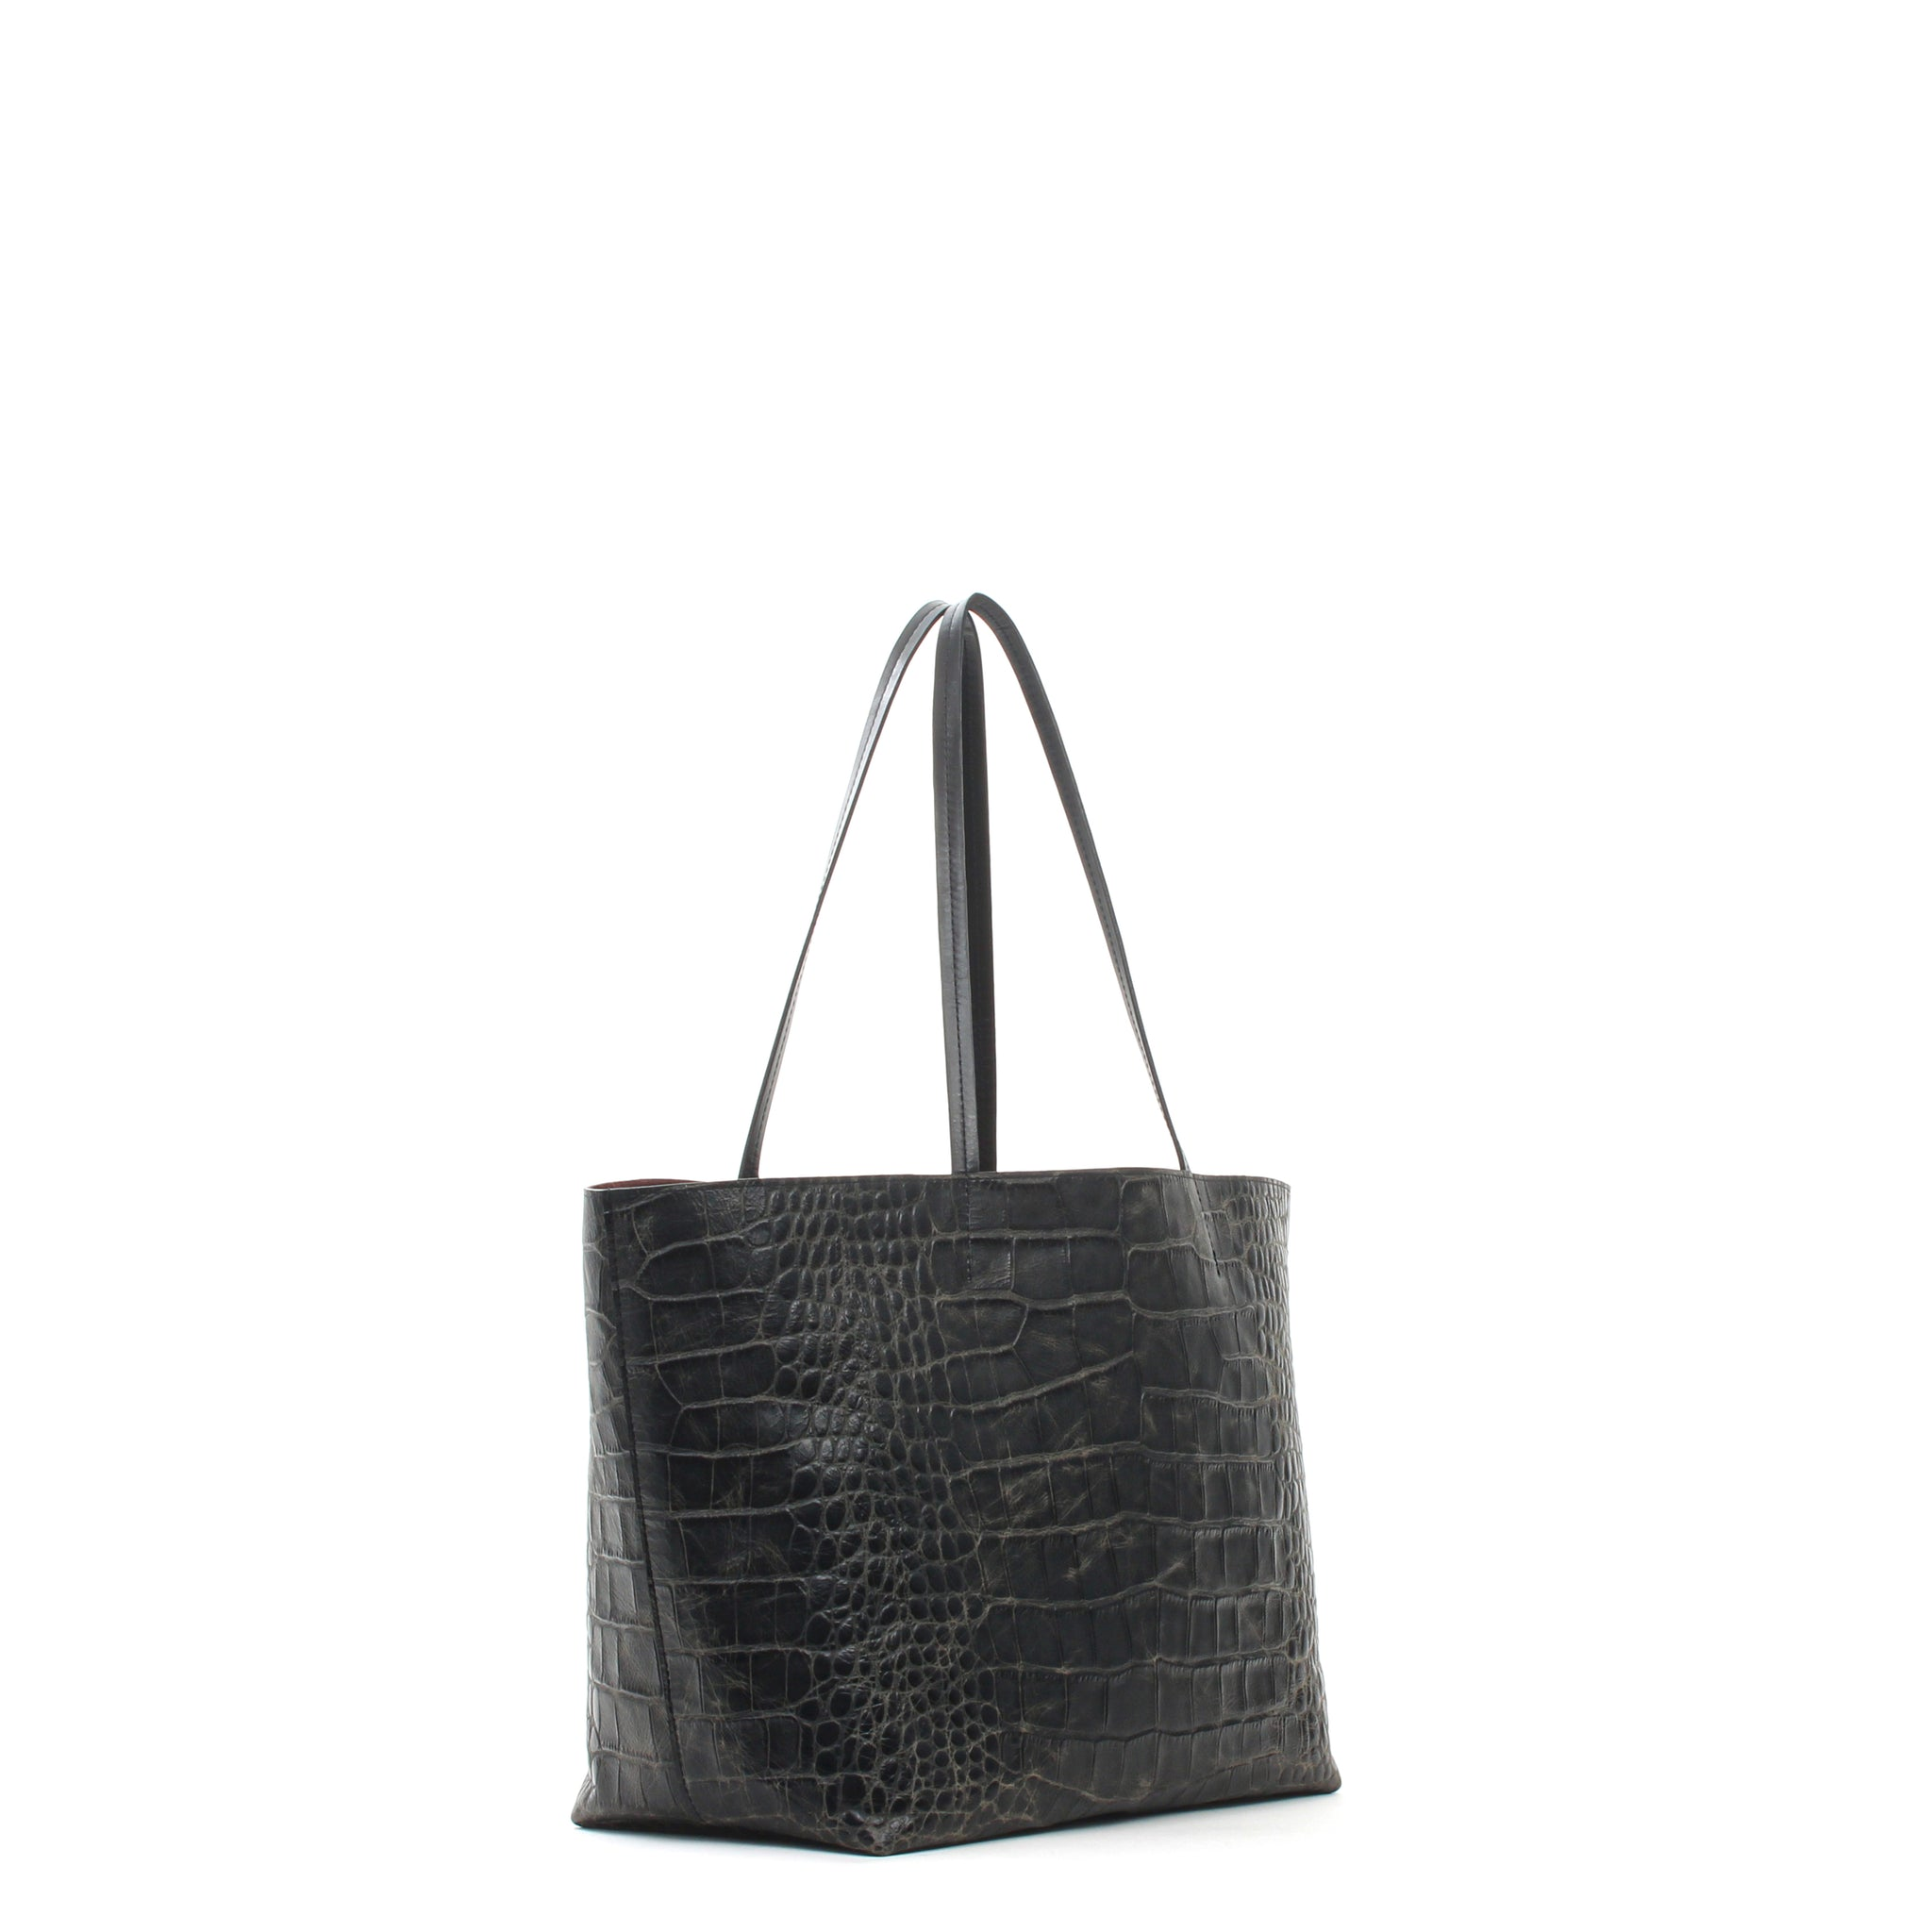 MEDIUM ESSENTIAL TOTE VINTAGE BLACK EMBOSSED GATOR